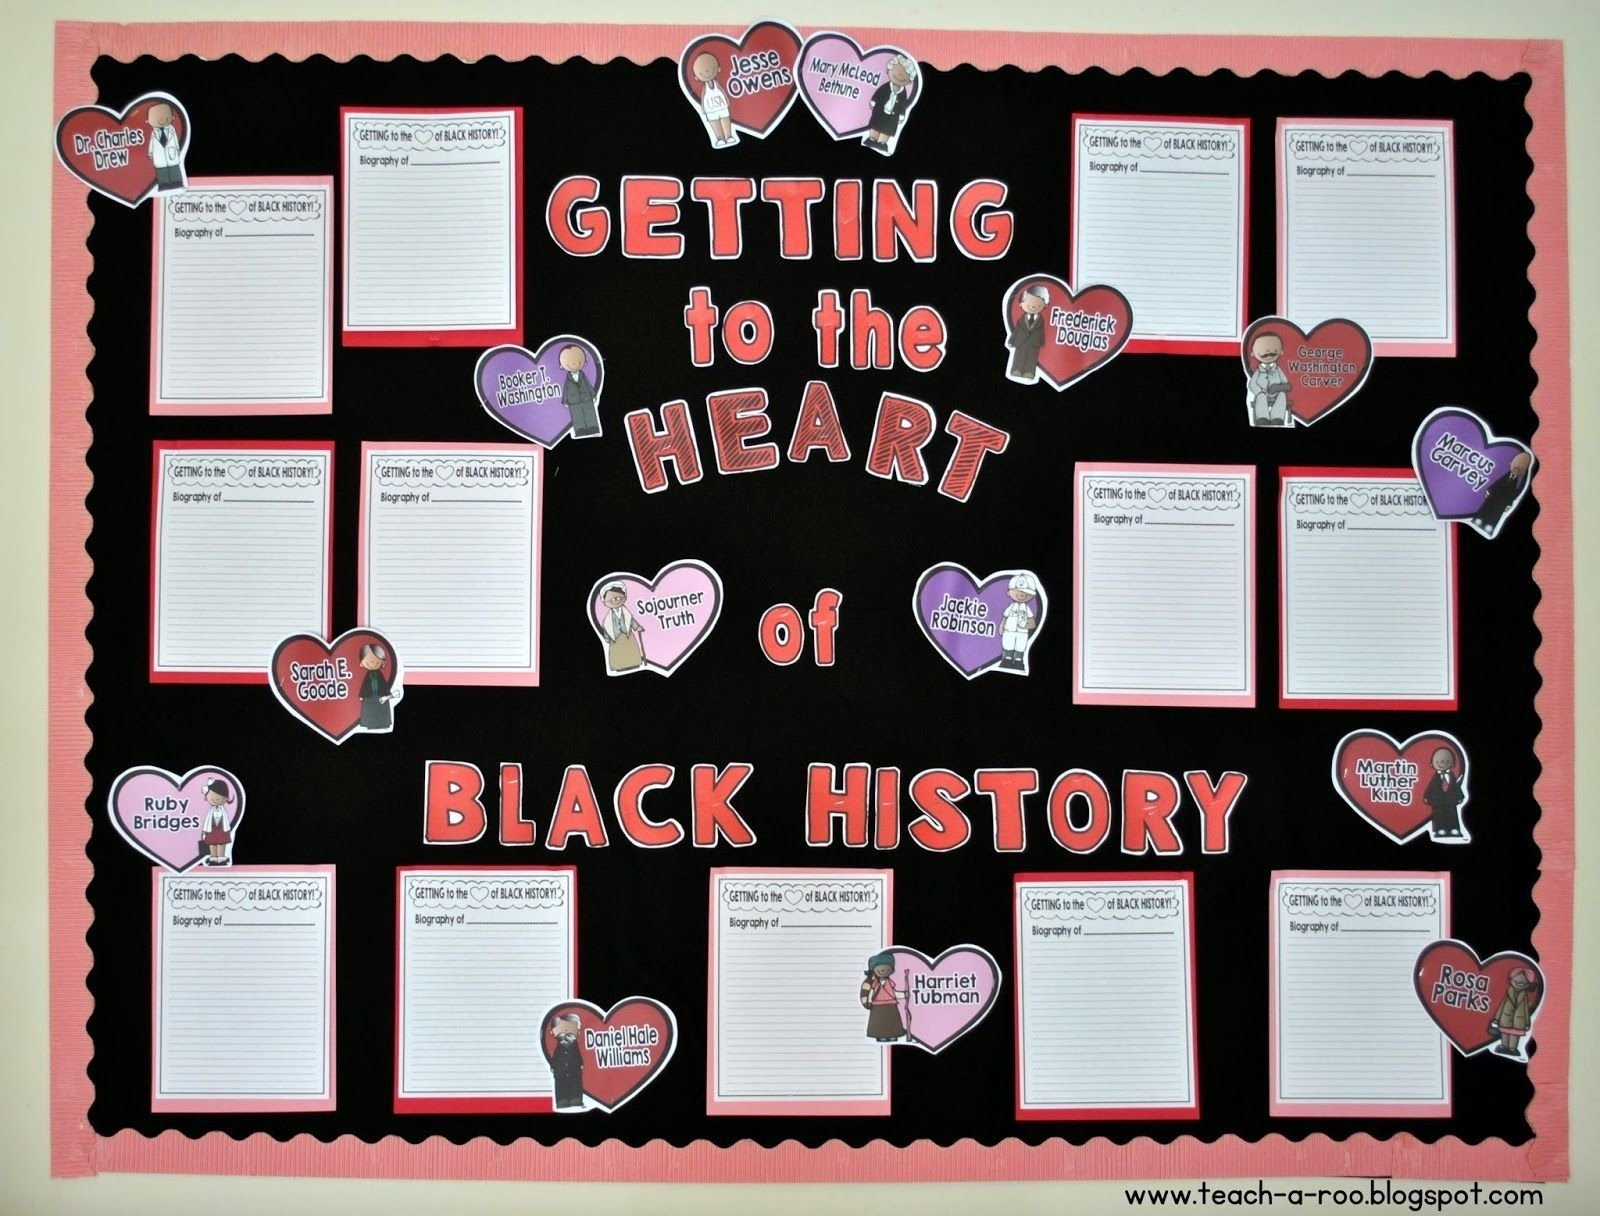 10 Fabulous Black History Month Bulletin Board Ideas getting to the heart of black history month freebie top teachers 2021